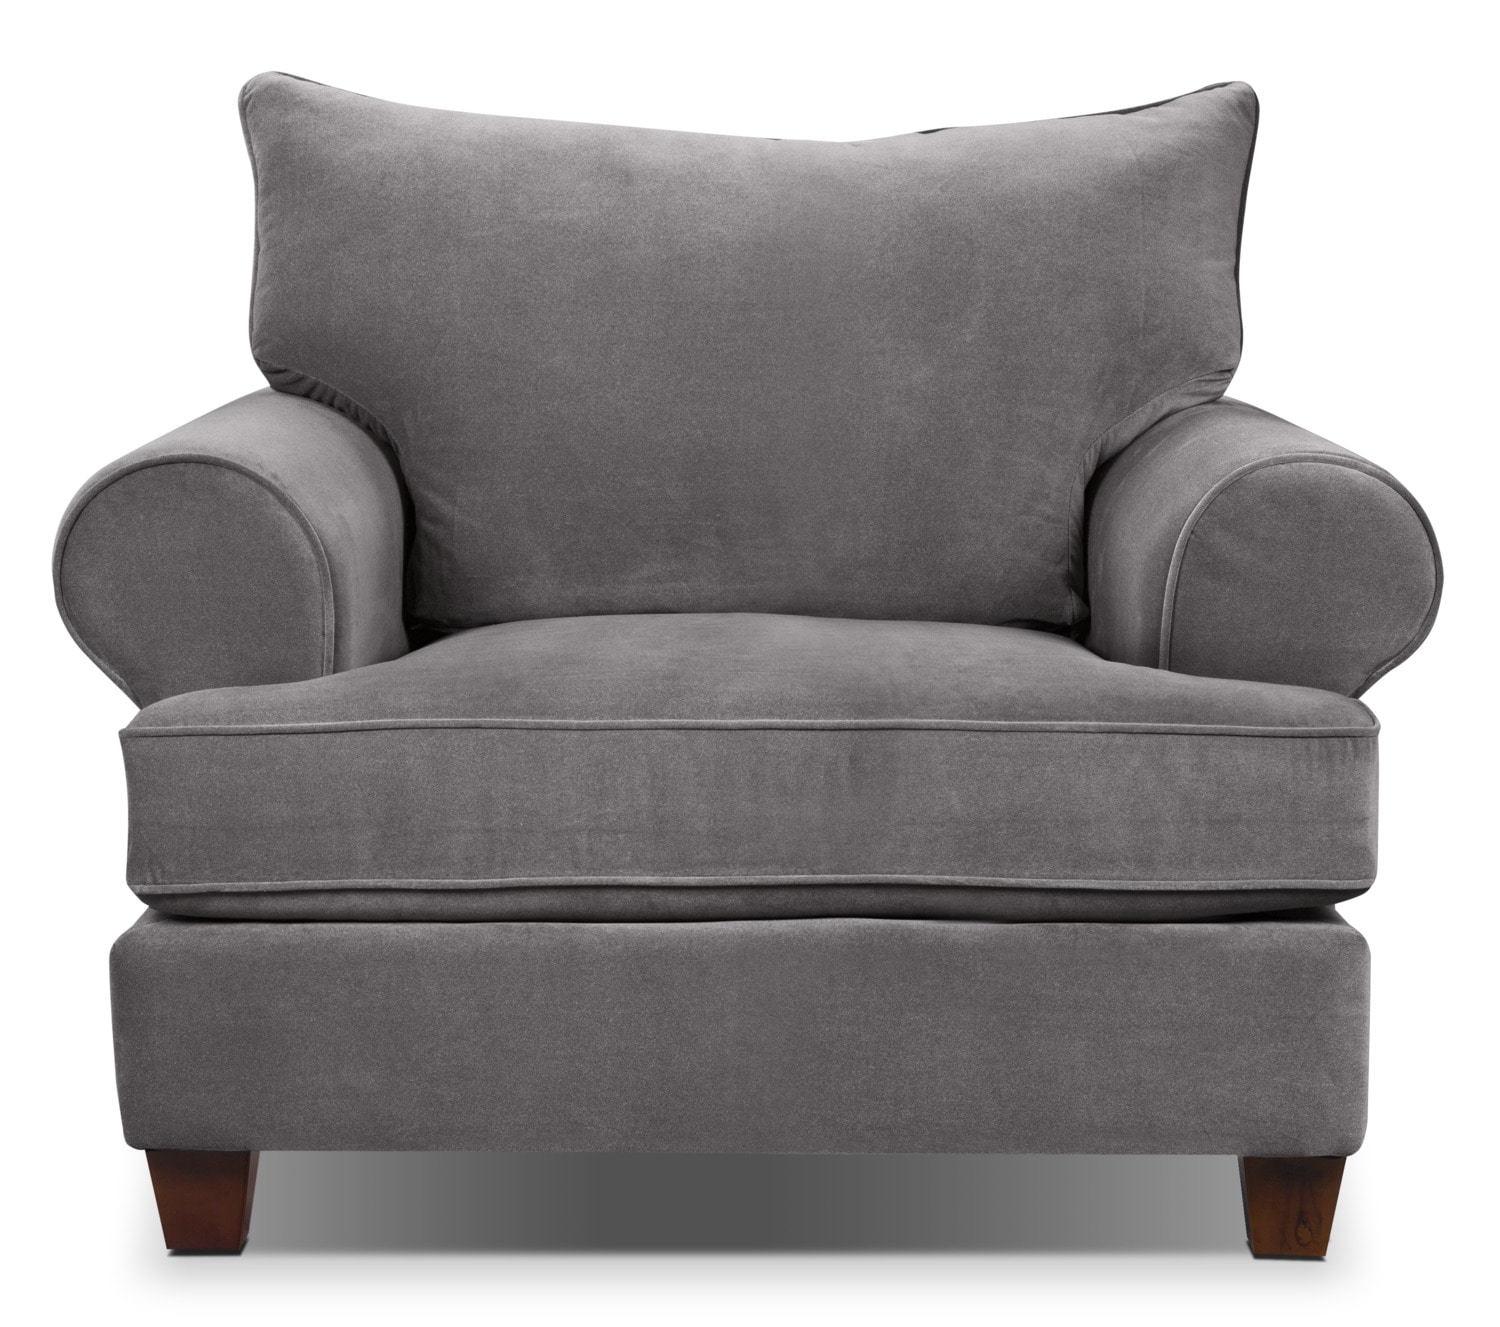 Living Room Furniture - Paige Microsuede Chair - Grey